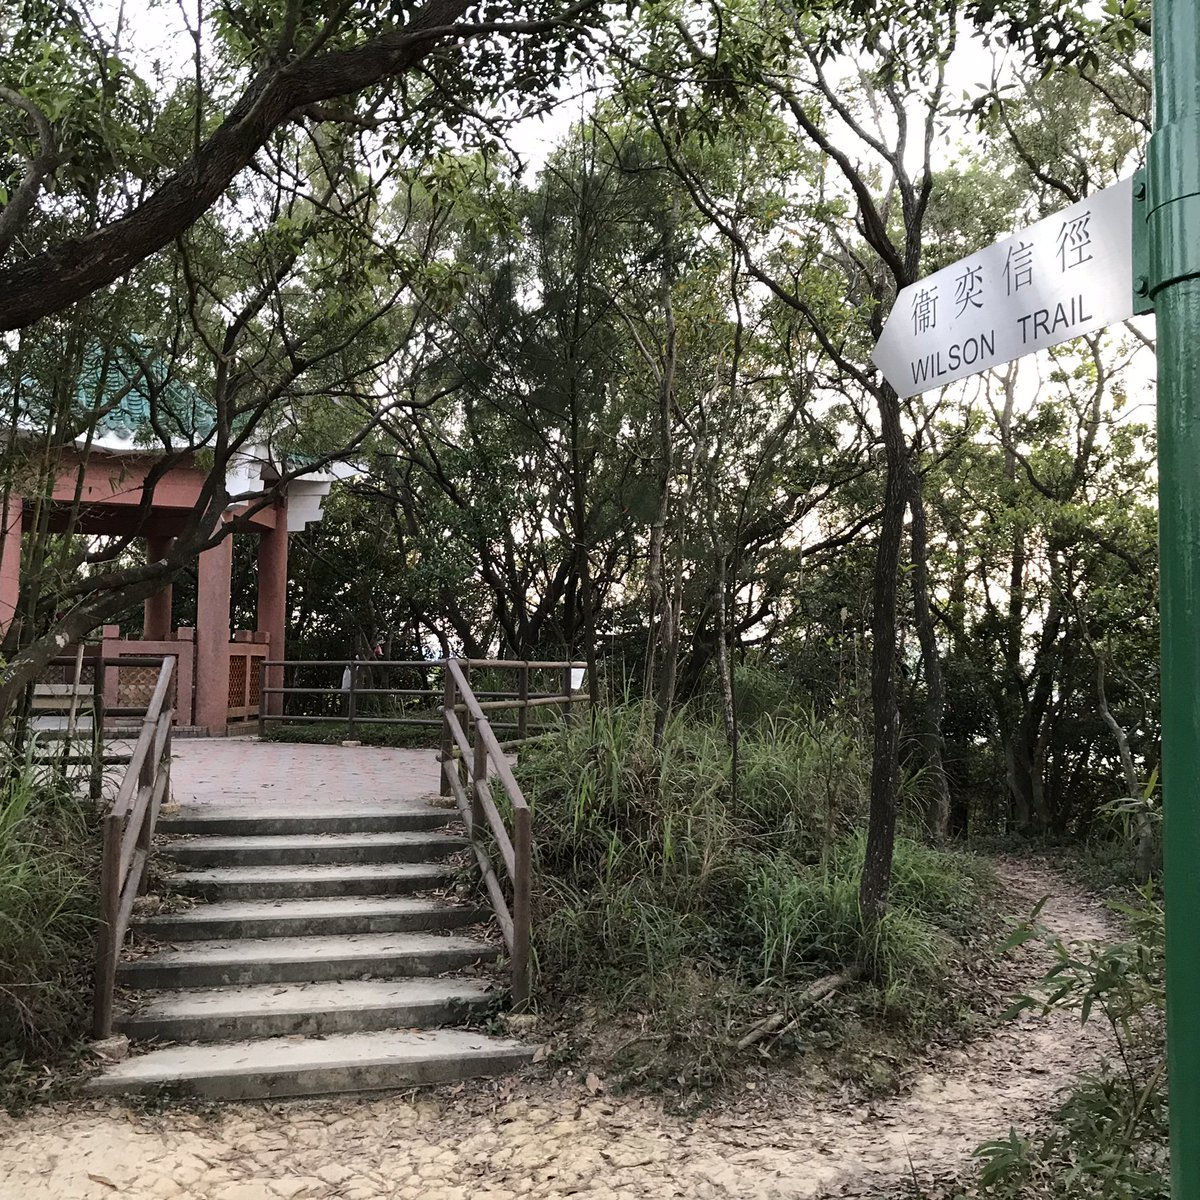 Gazebo, benches, views, & of course stairs on Wilson trail section 3